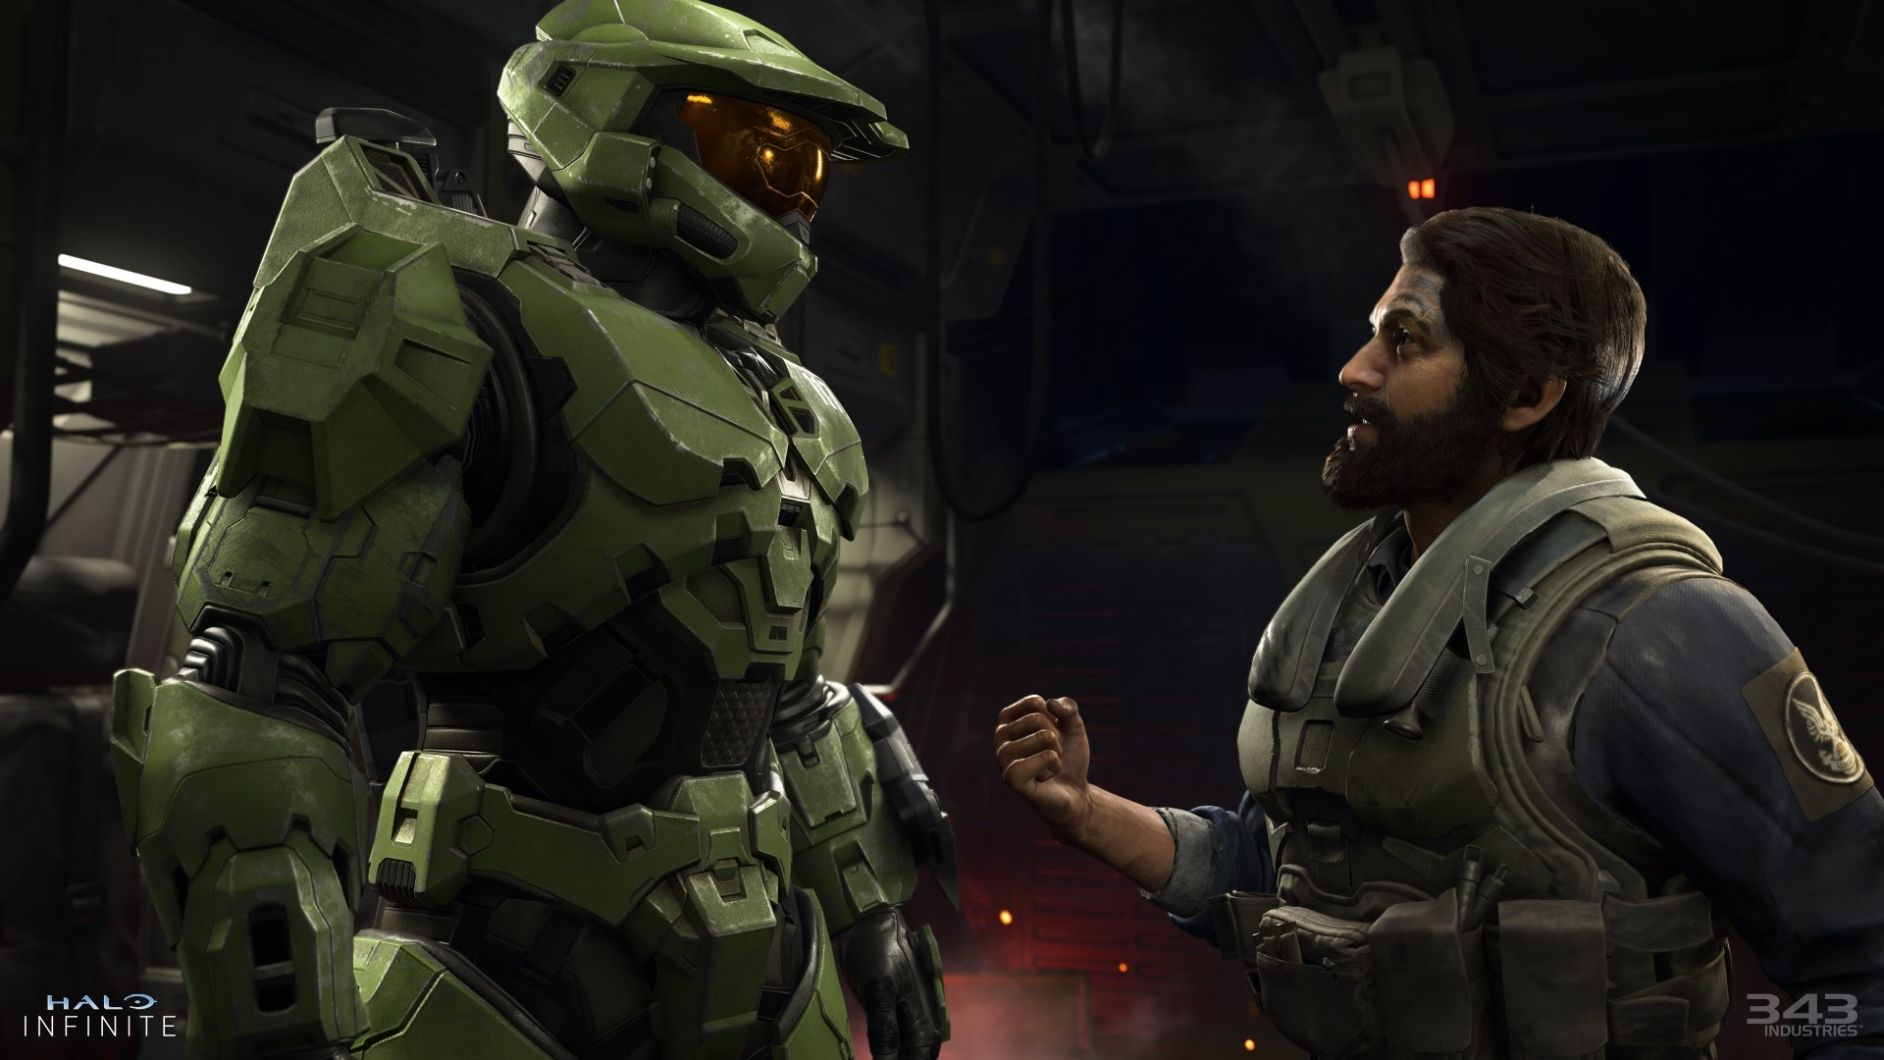 Master Chief and pilot arguing